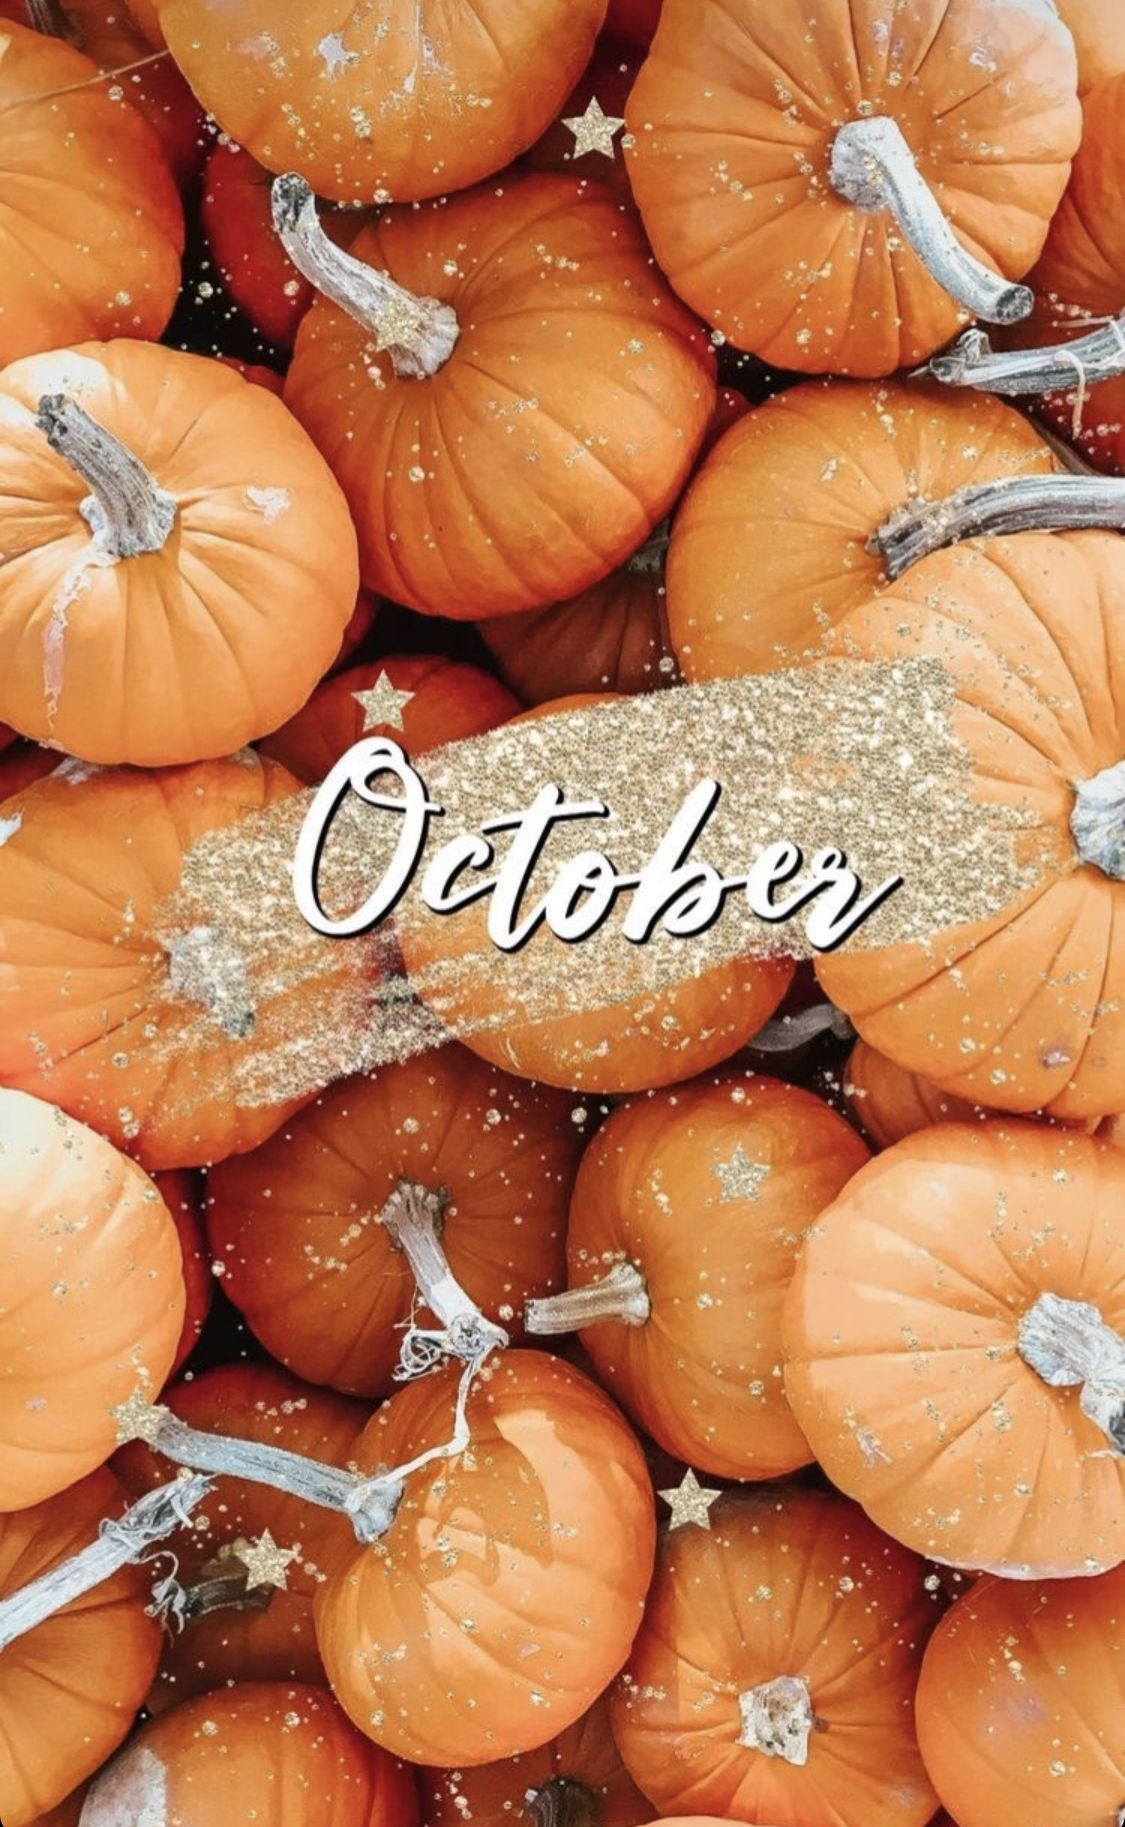 Pin By Madison Mawhinney On Thanksgiving Fall In 2020 Fall Wallpaper Pretty Wallpaper Iphone Free Iphone Wallpaper